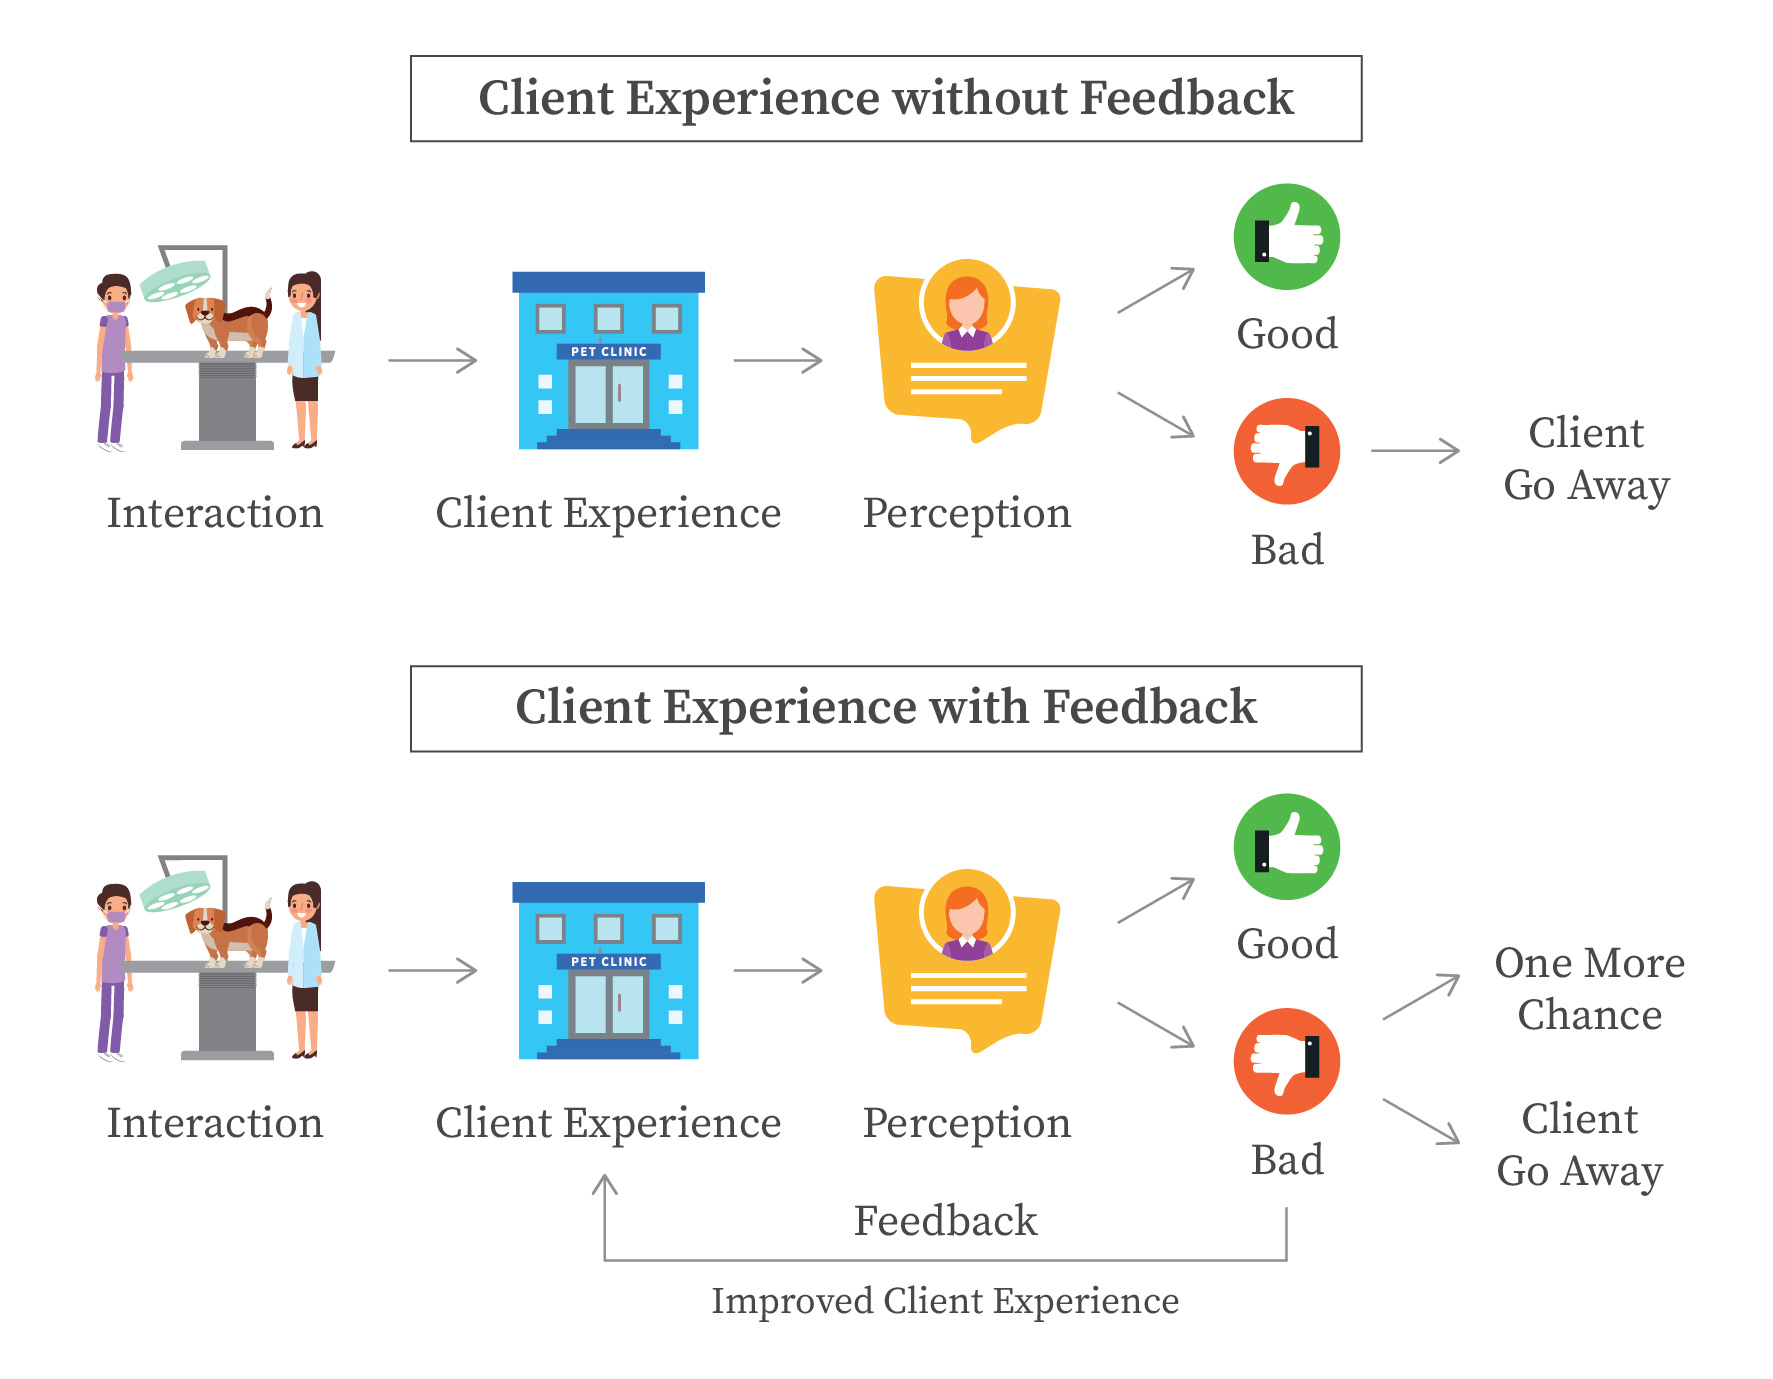 feedback improves client experience and retention and